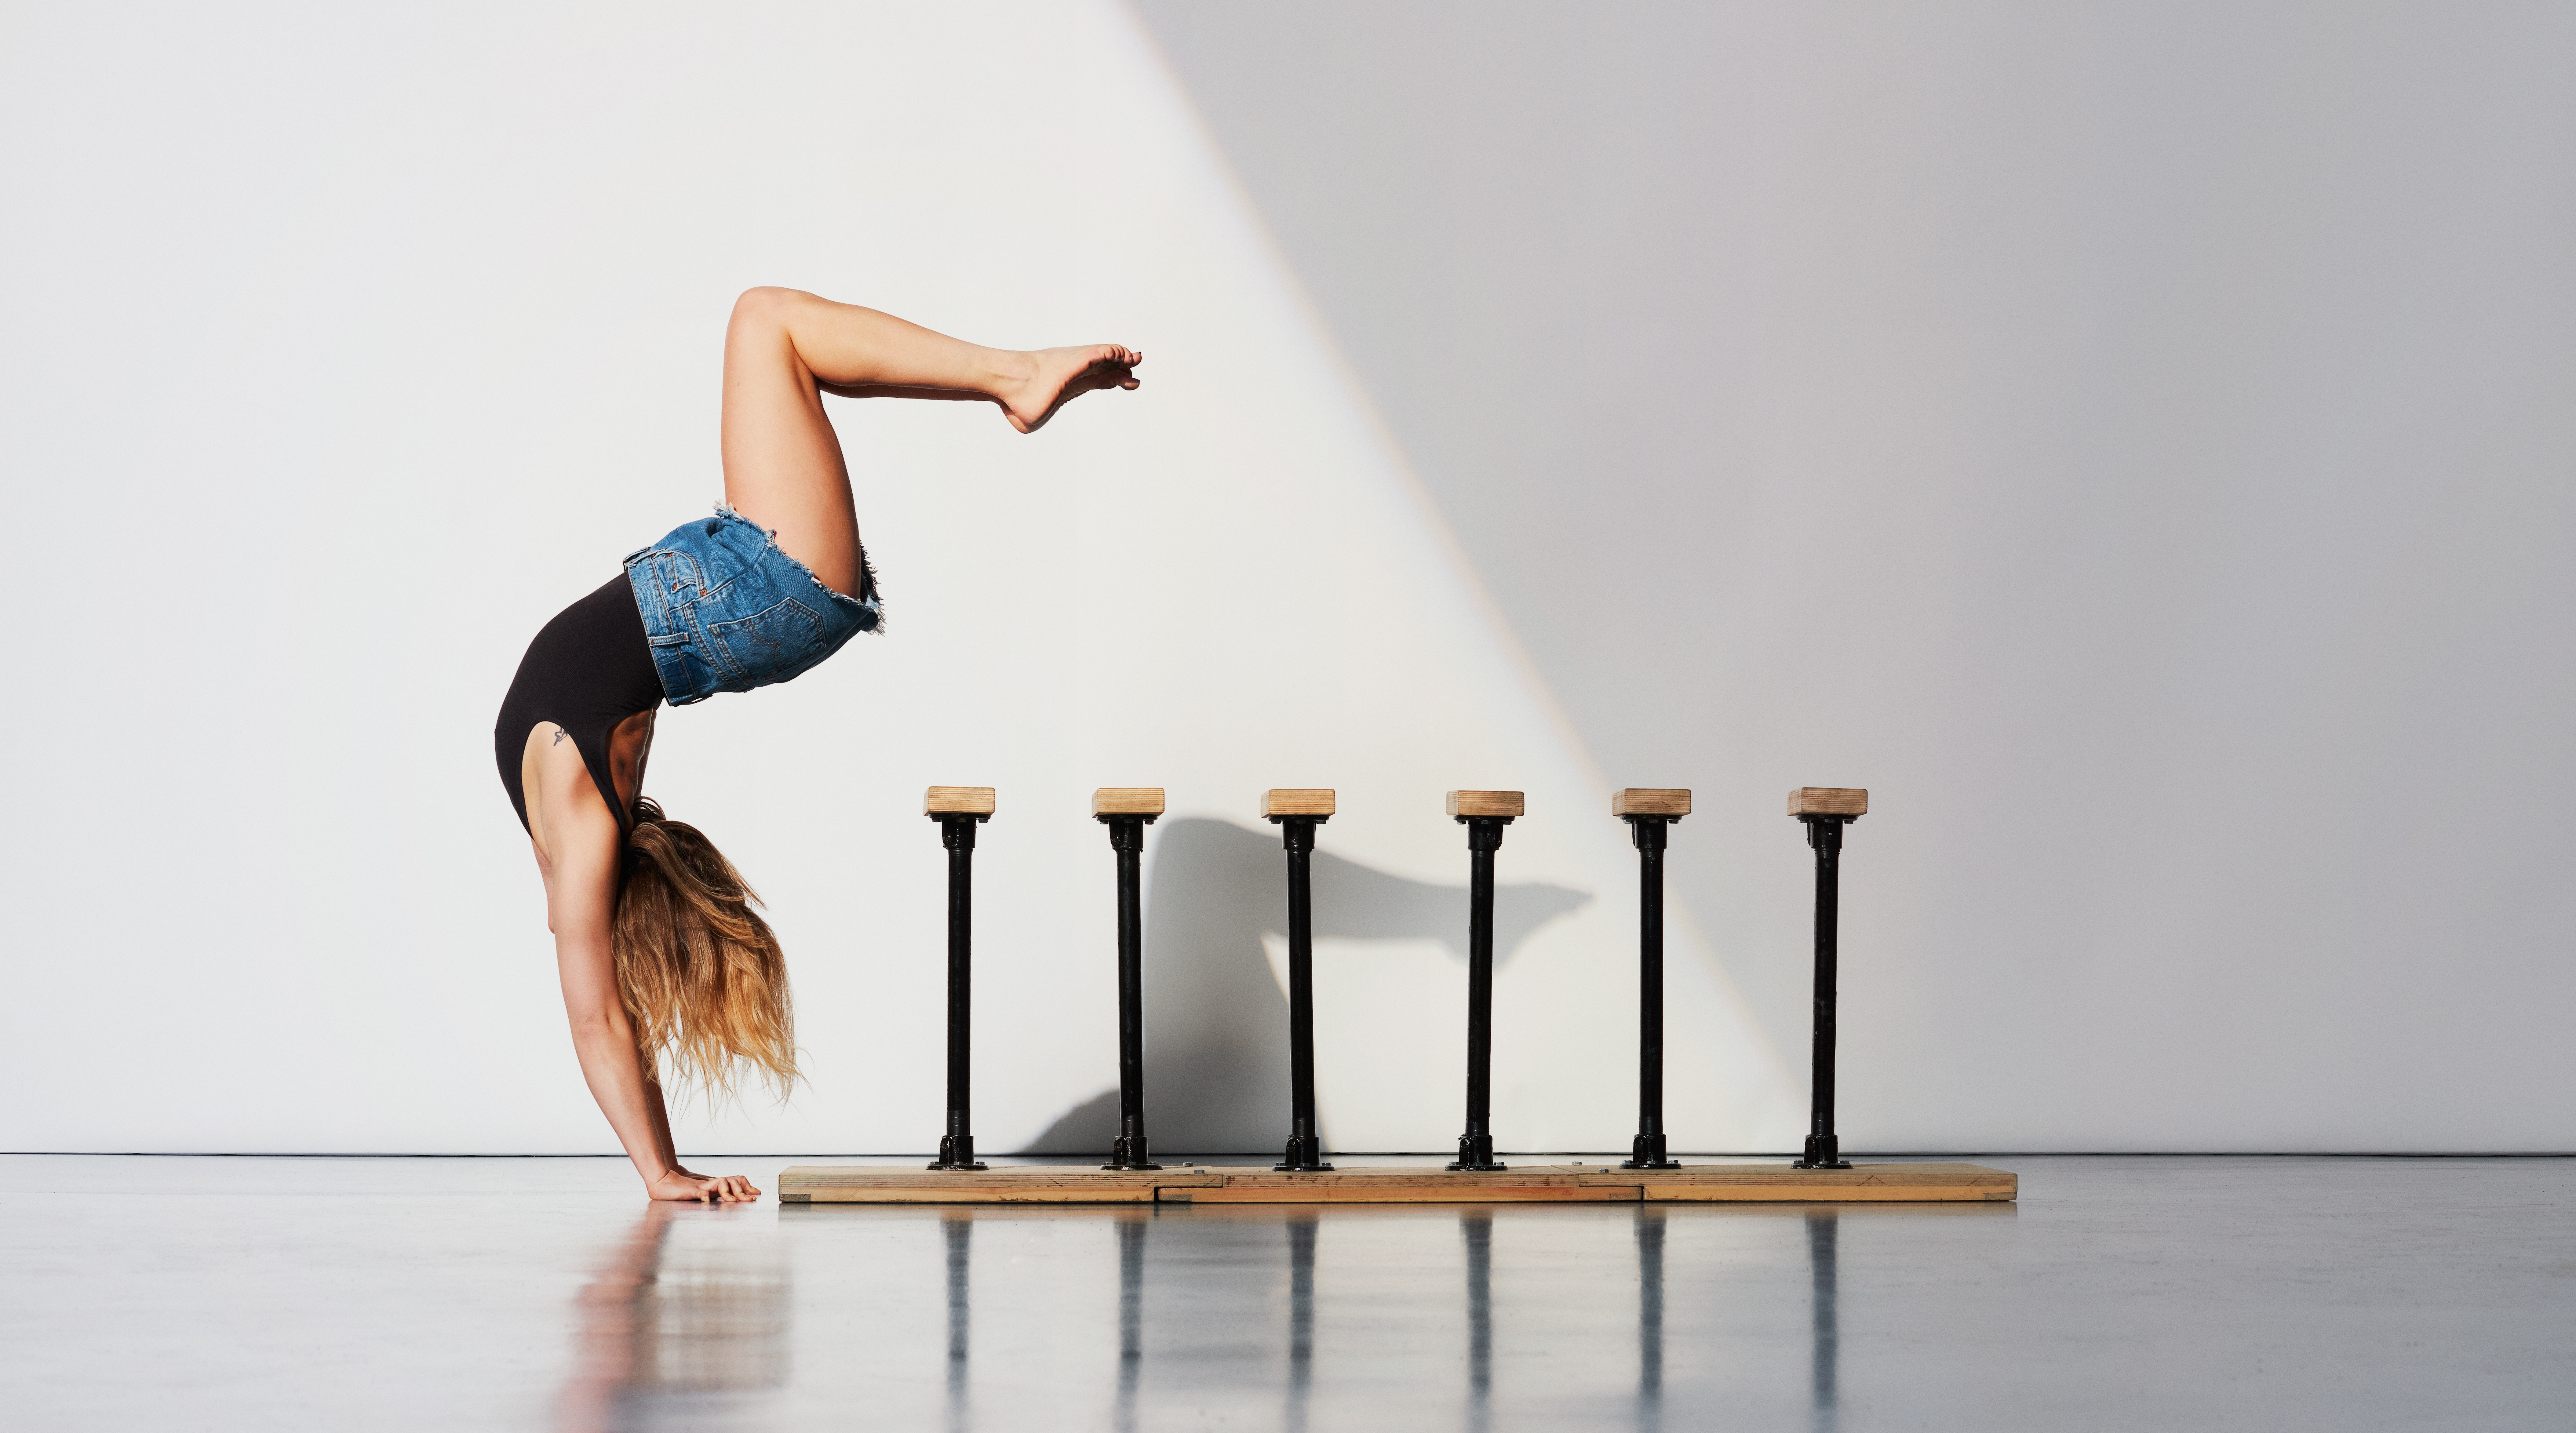 National Centre for Circus Arts by Bertil Nilsson